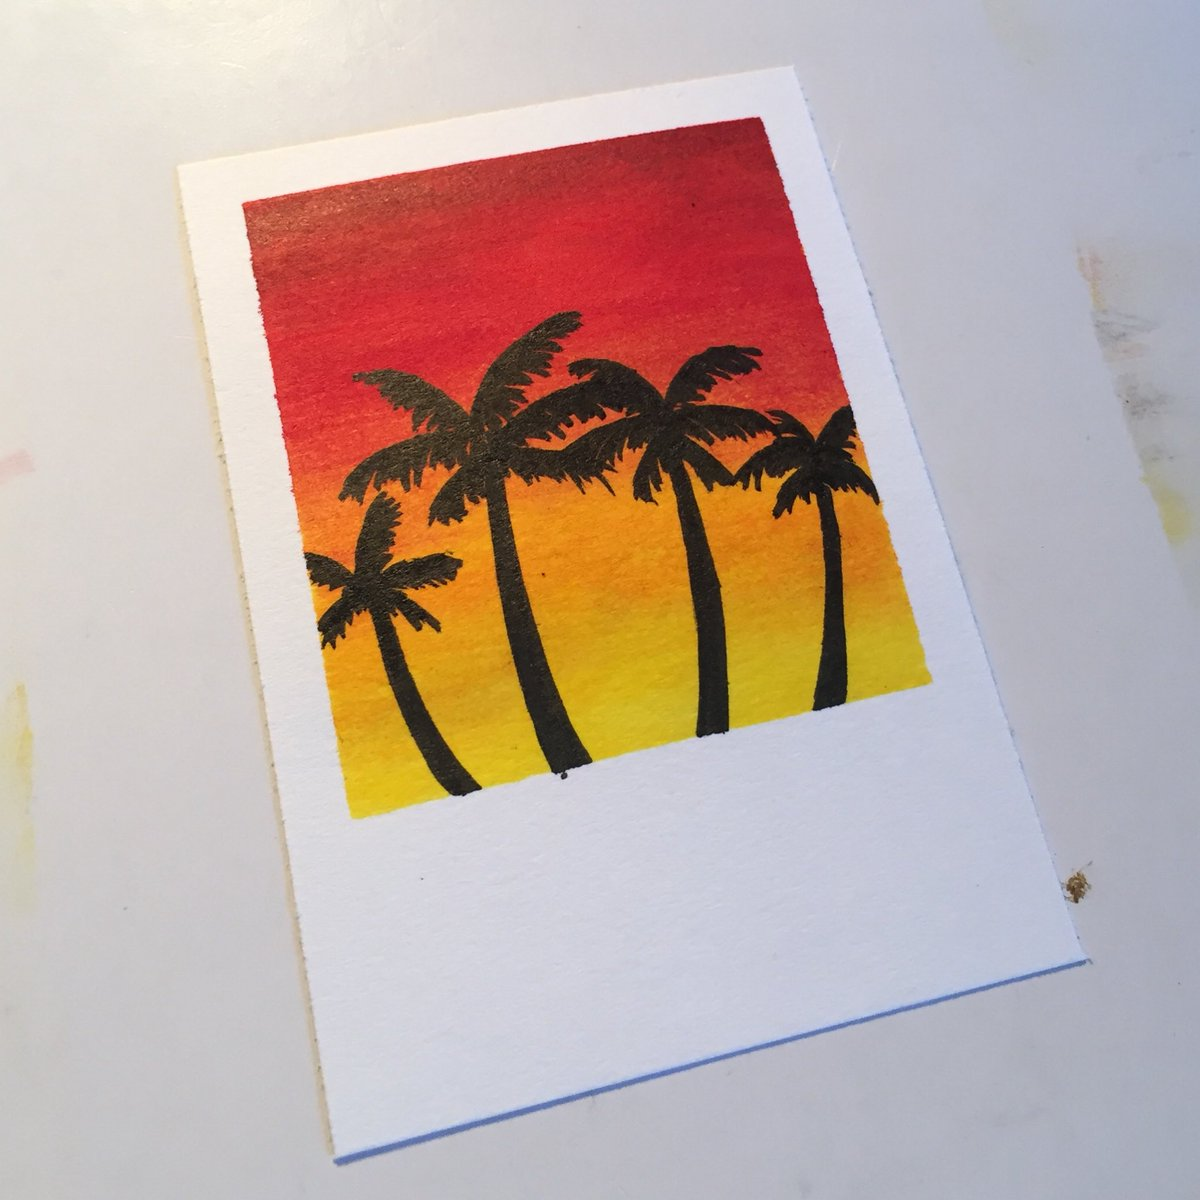 "i had a lot of fun brightening my office with these little #polaroid ""paintings"" today! they're pretty messy given that i had no paint aside from white and ended up using Faber-Castells, but i like them. try it yourself, they're a lot of fun! pic.twitter.com/BBvlWasiWM"